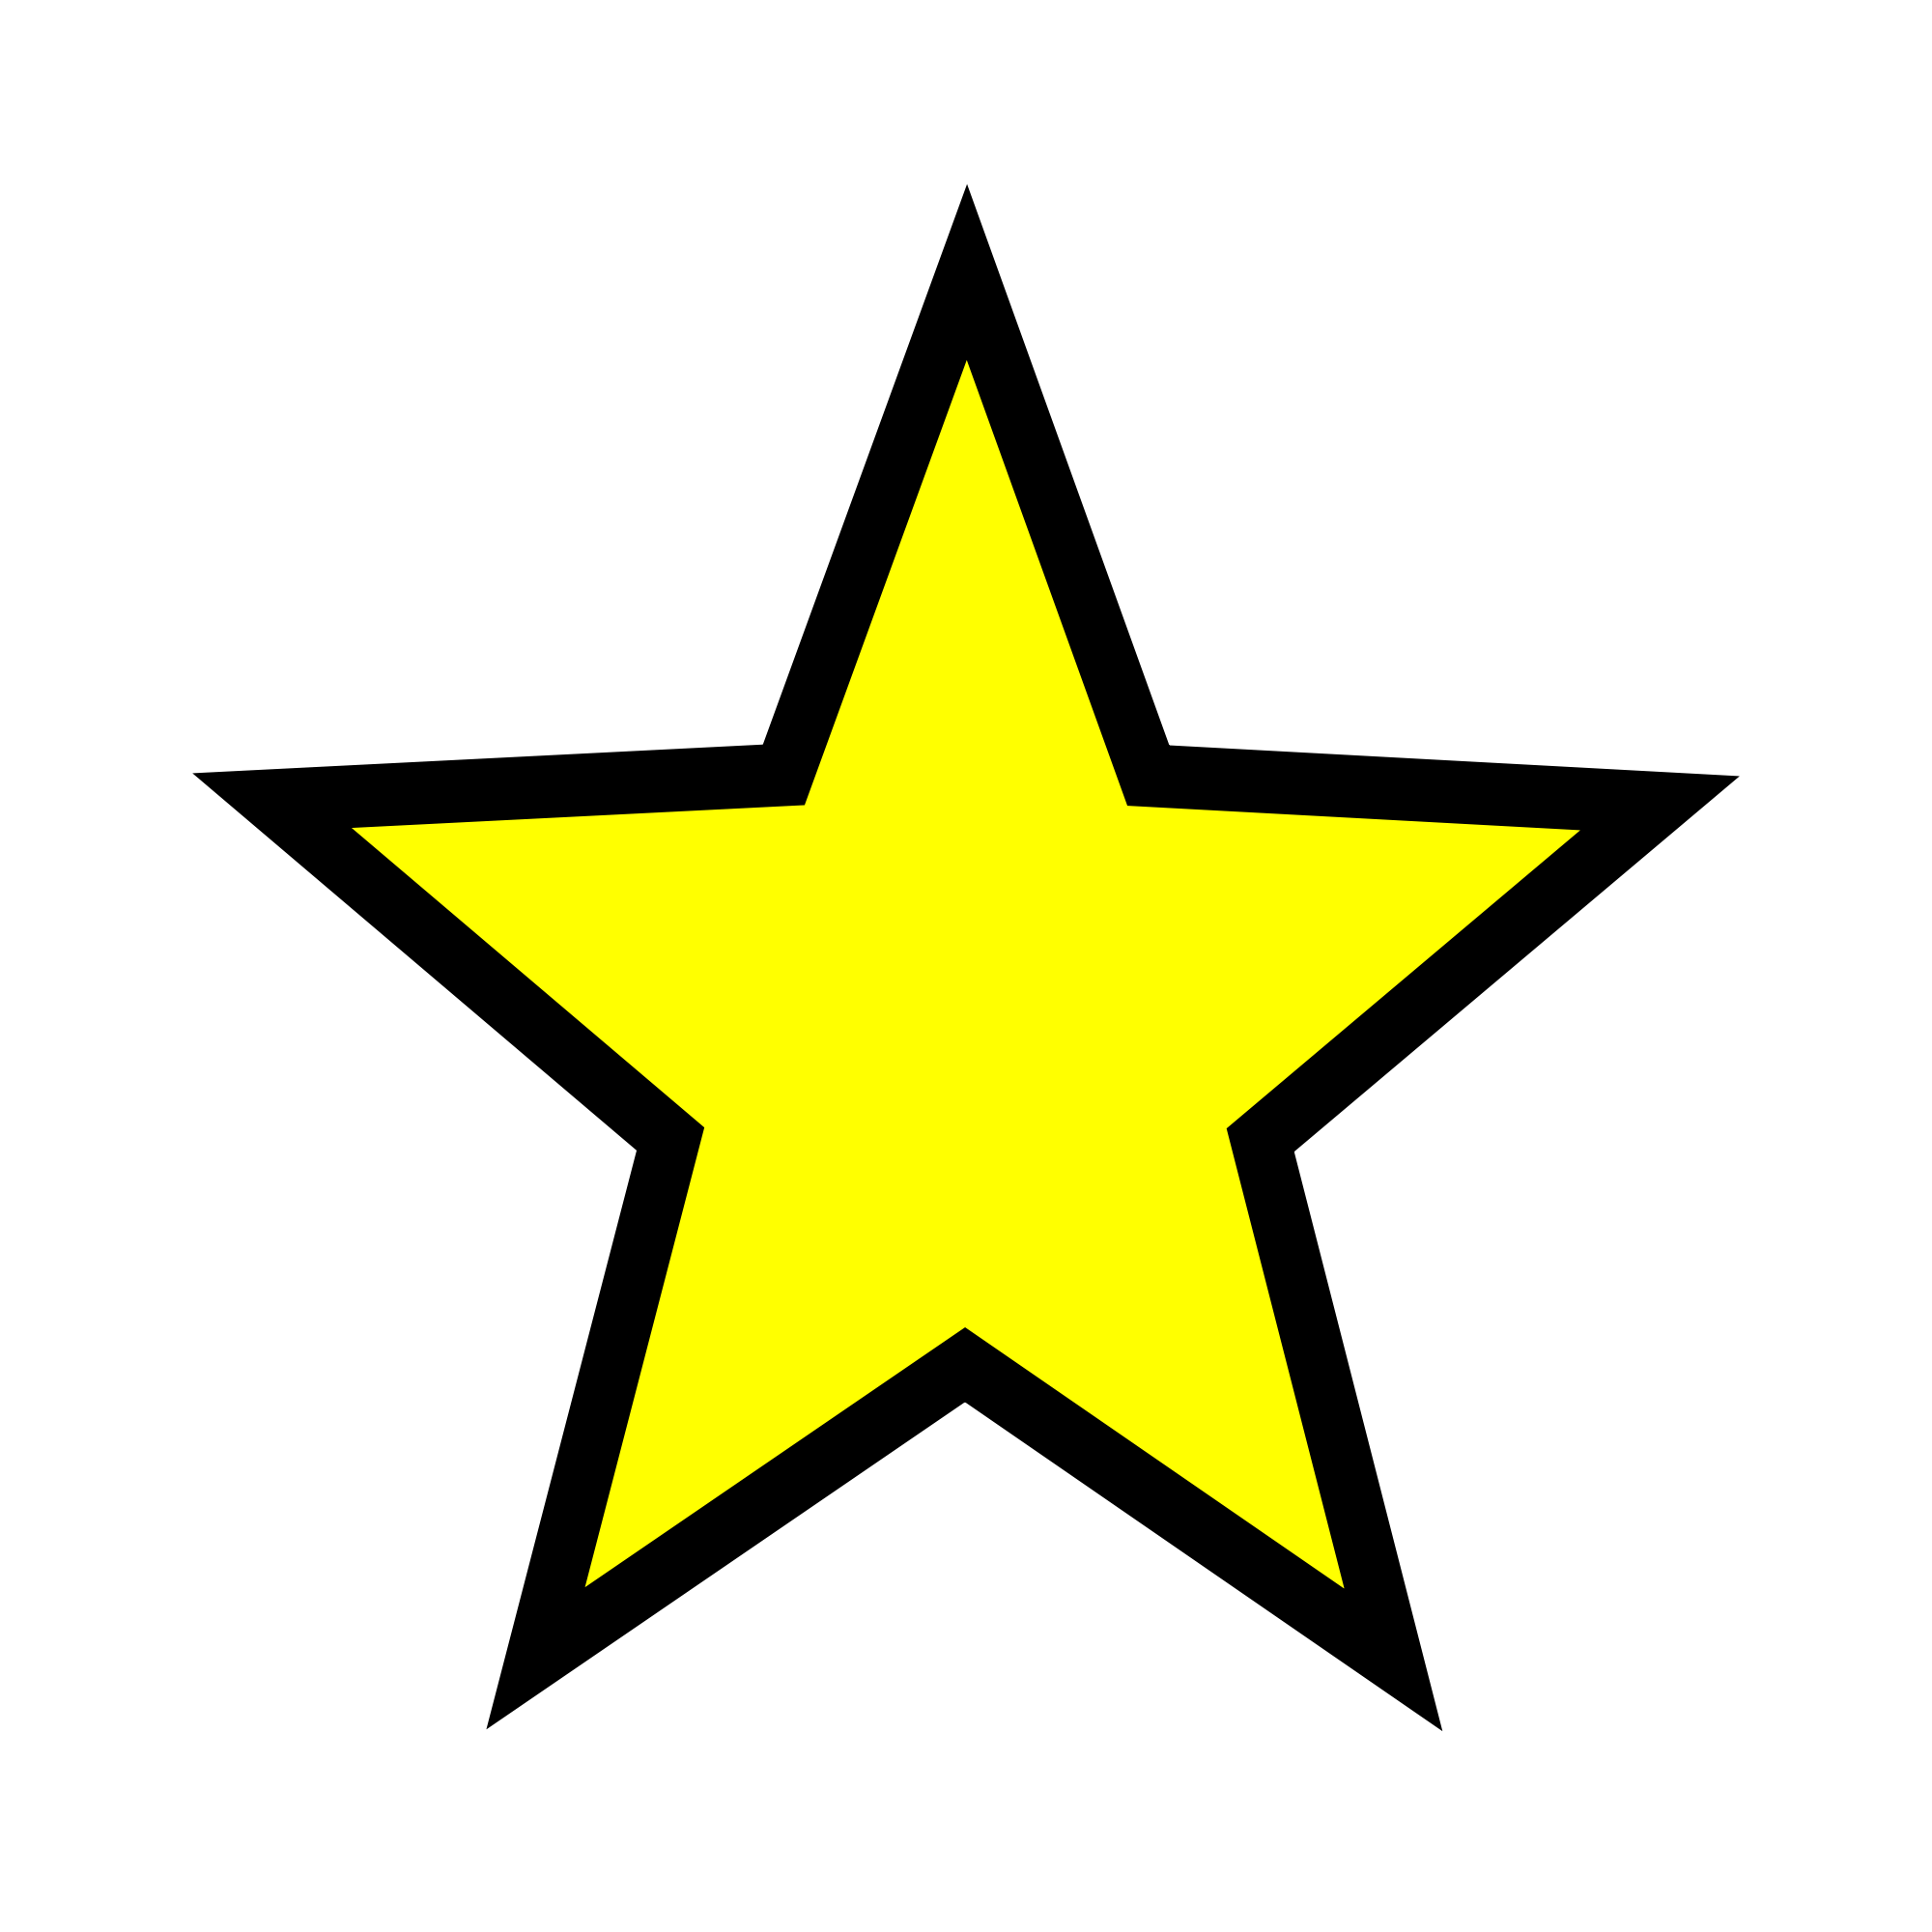 2000x2000 Filefull Star Yellow.svg